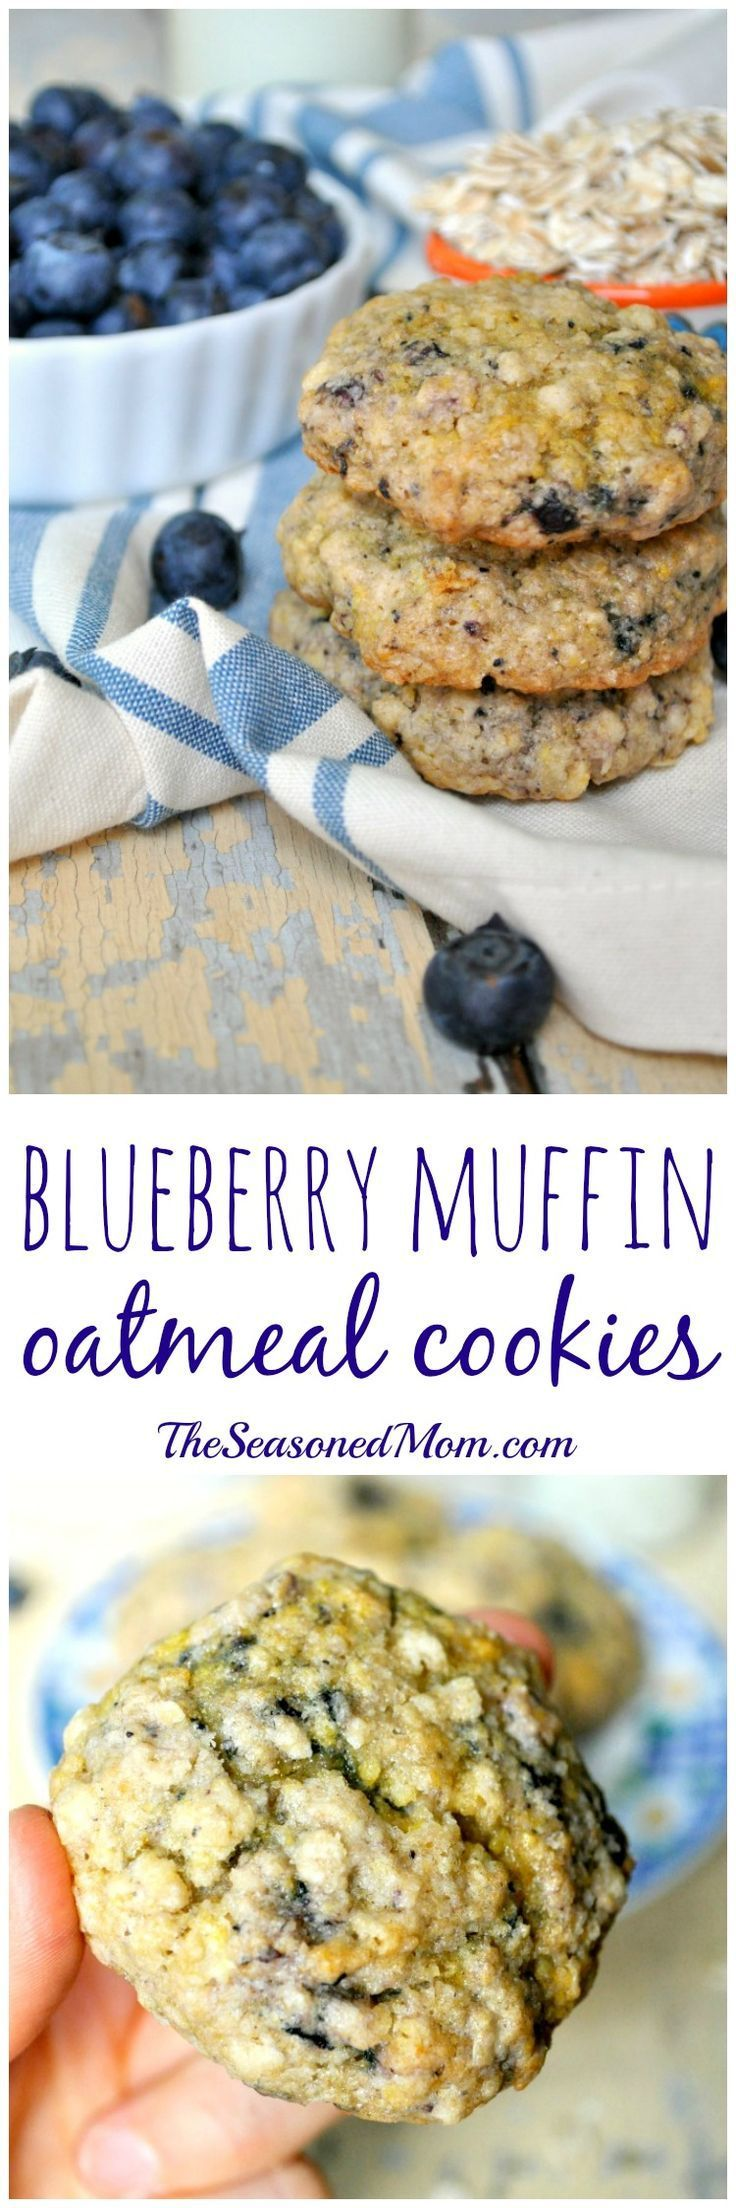 Add some whole grains to a boxed muffin mix and the end result is a perfect cross between a muffin and a cookie! These thick, soft, and chewy Blueberry Muffin Oatmeal Cookies are a delicious option for breakfast, snack, or even dessert!